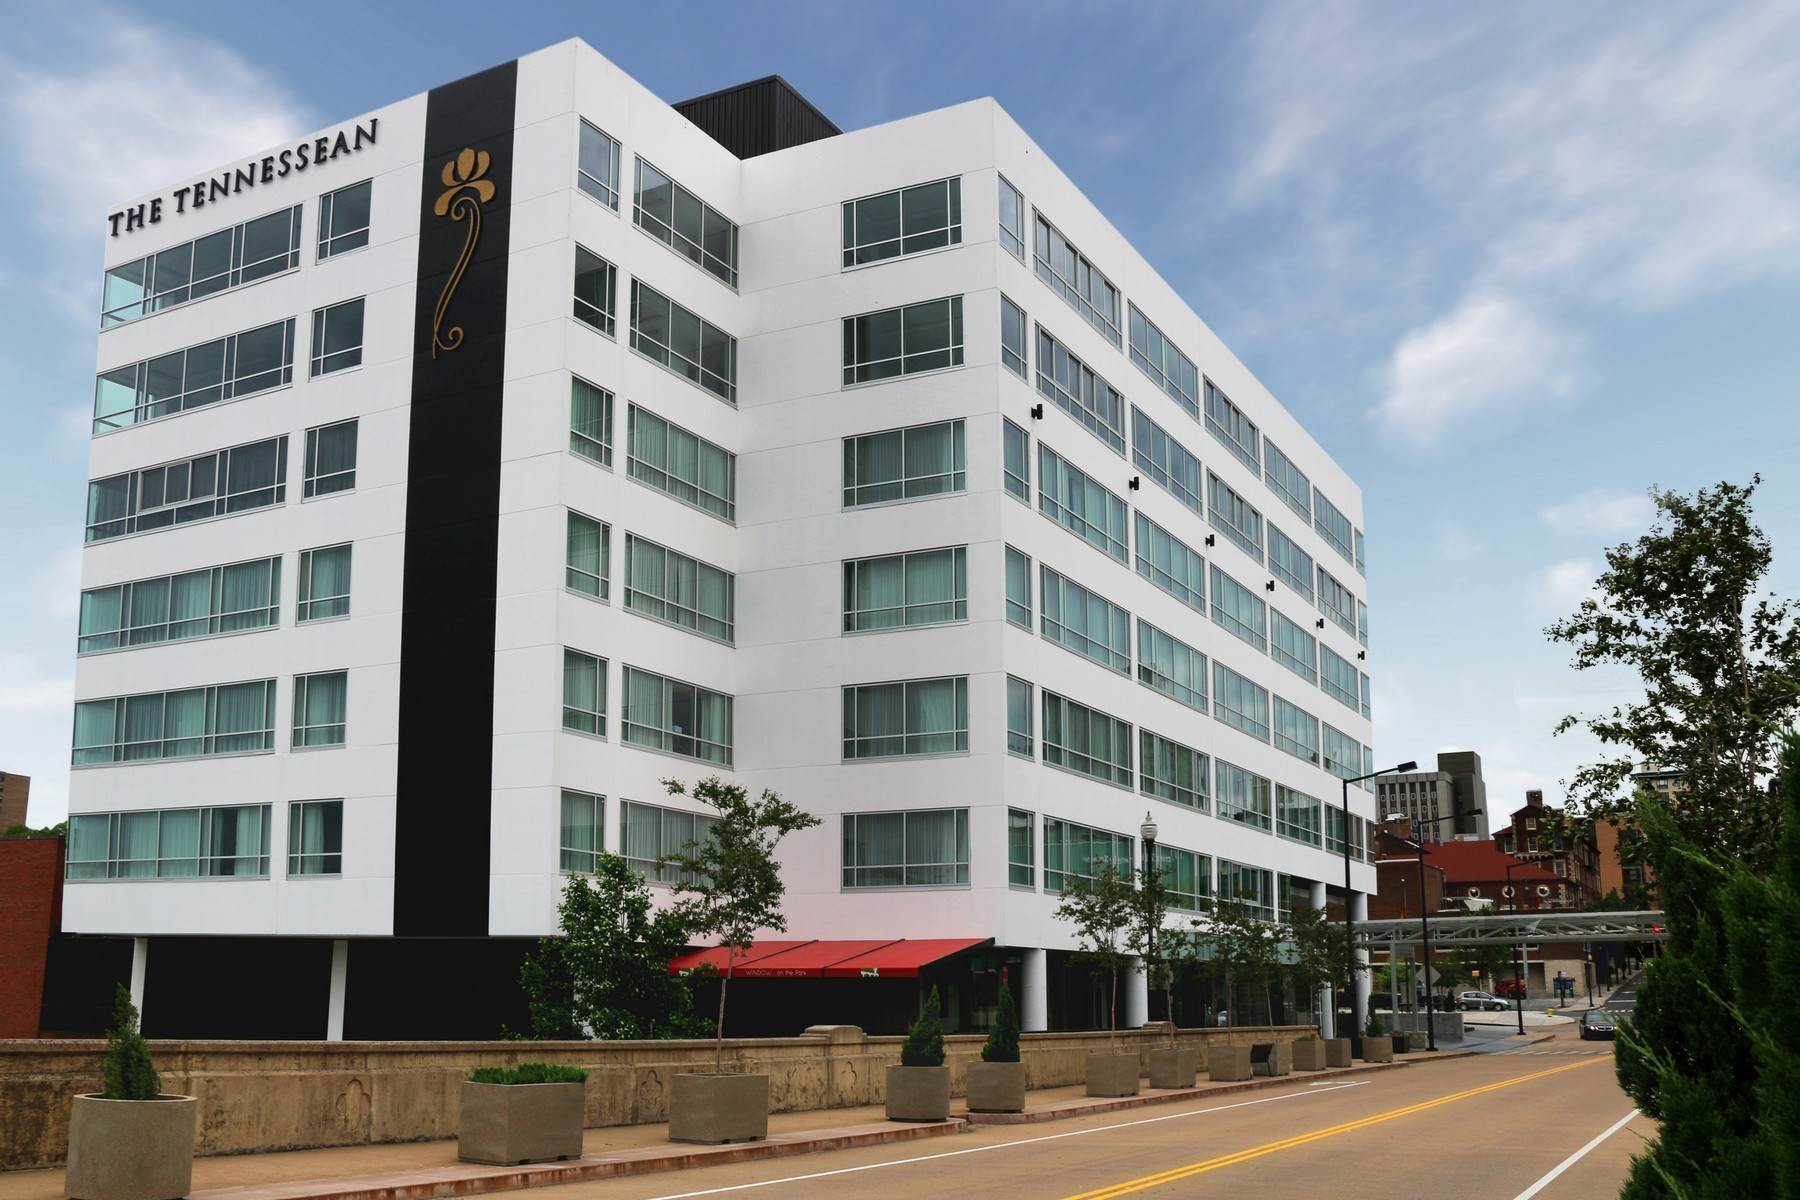 18. Condominiums for Sale at The Tennessean Residences 531 Henley Street, #601 Knoxville, Tennessee 37902 United States